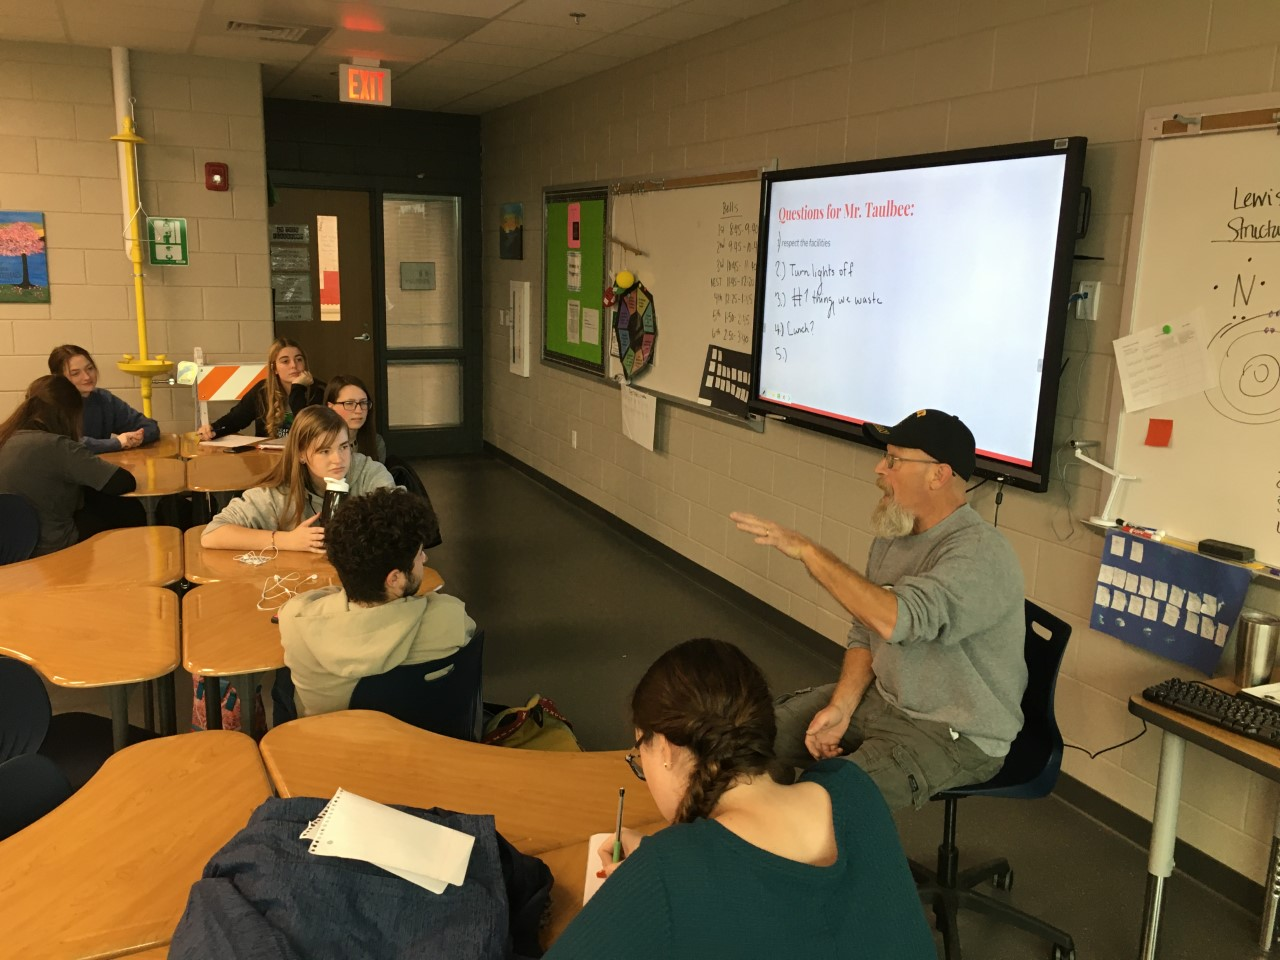 Les Taulbee helps GCHS in a variety of ways, but he enjoys the time he is able to work with students.  He recently met with students on the Energy Team to discuss some ideas about how energy and waste could be reduced at school.